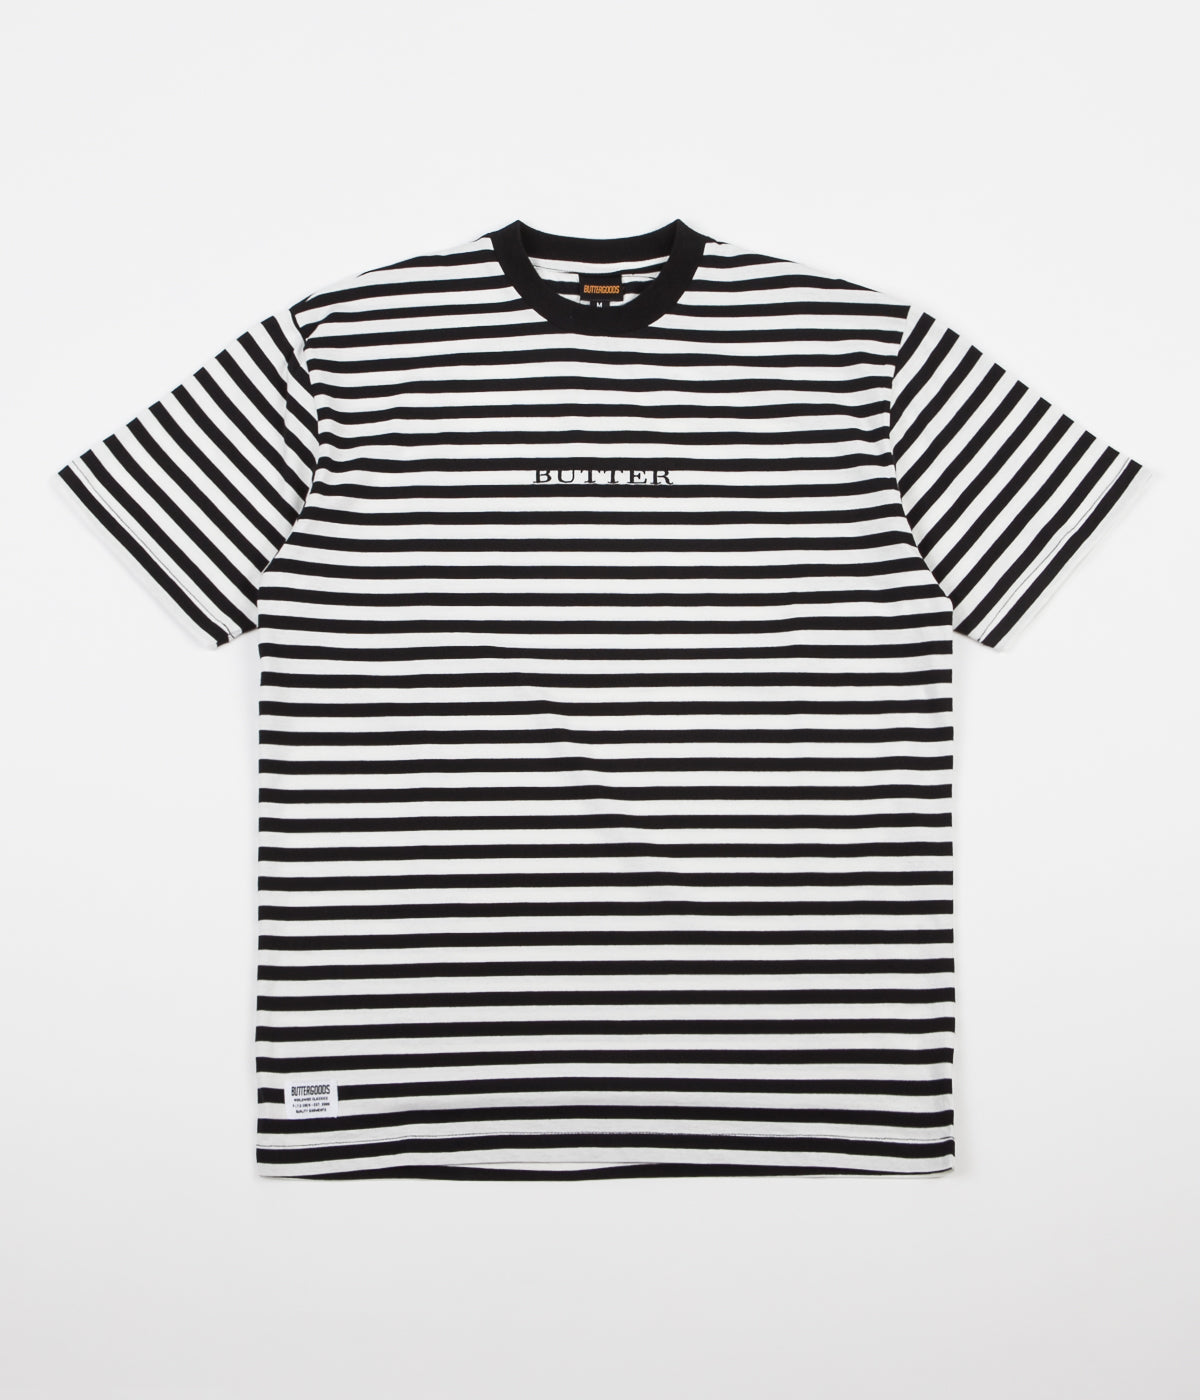 Butter Goods Hampshire Stripe T-Shirt - Black